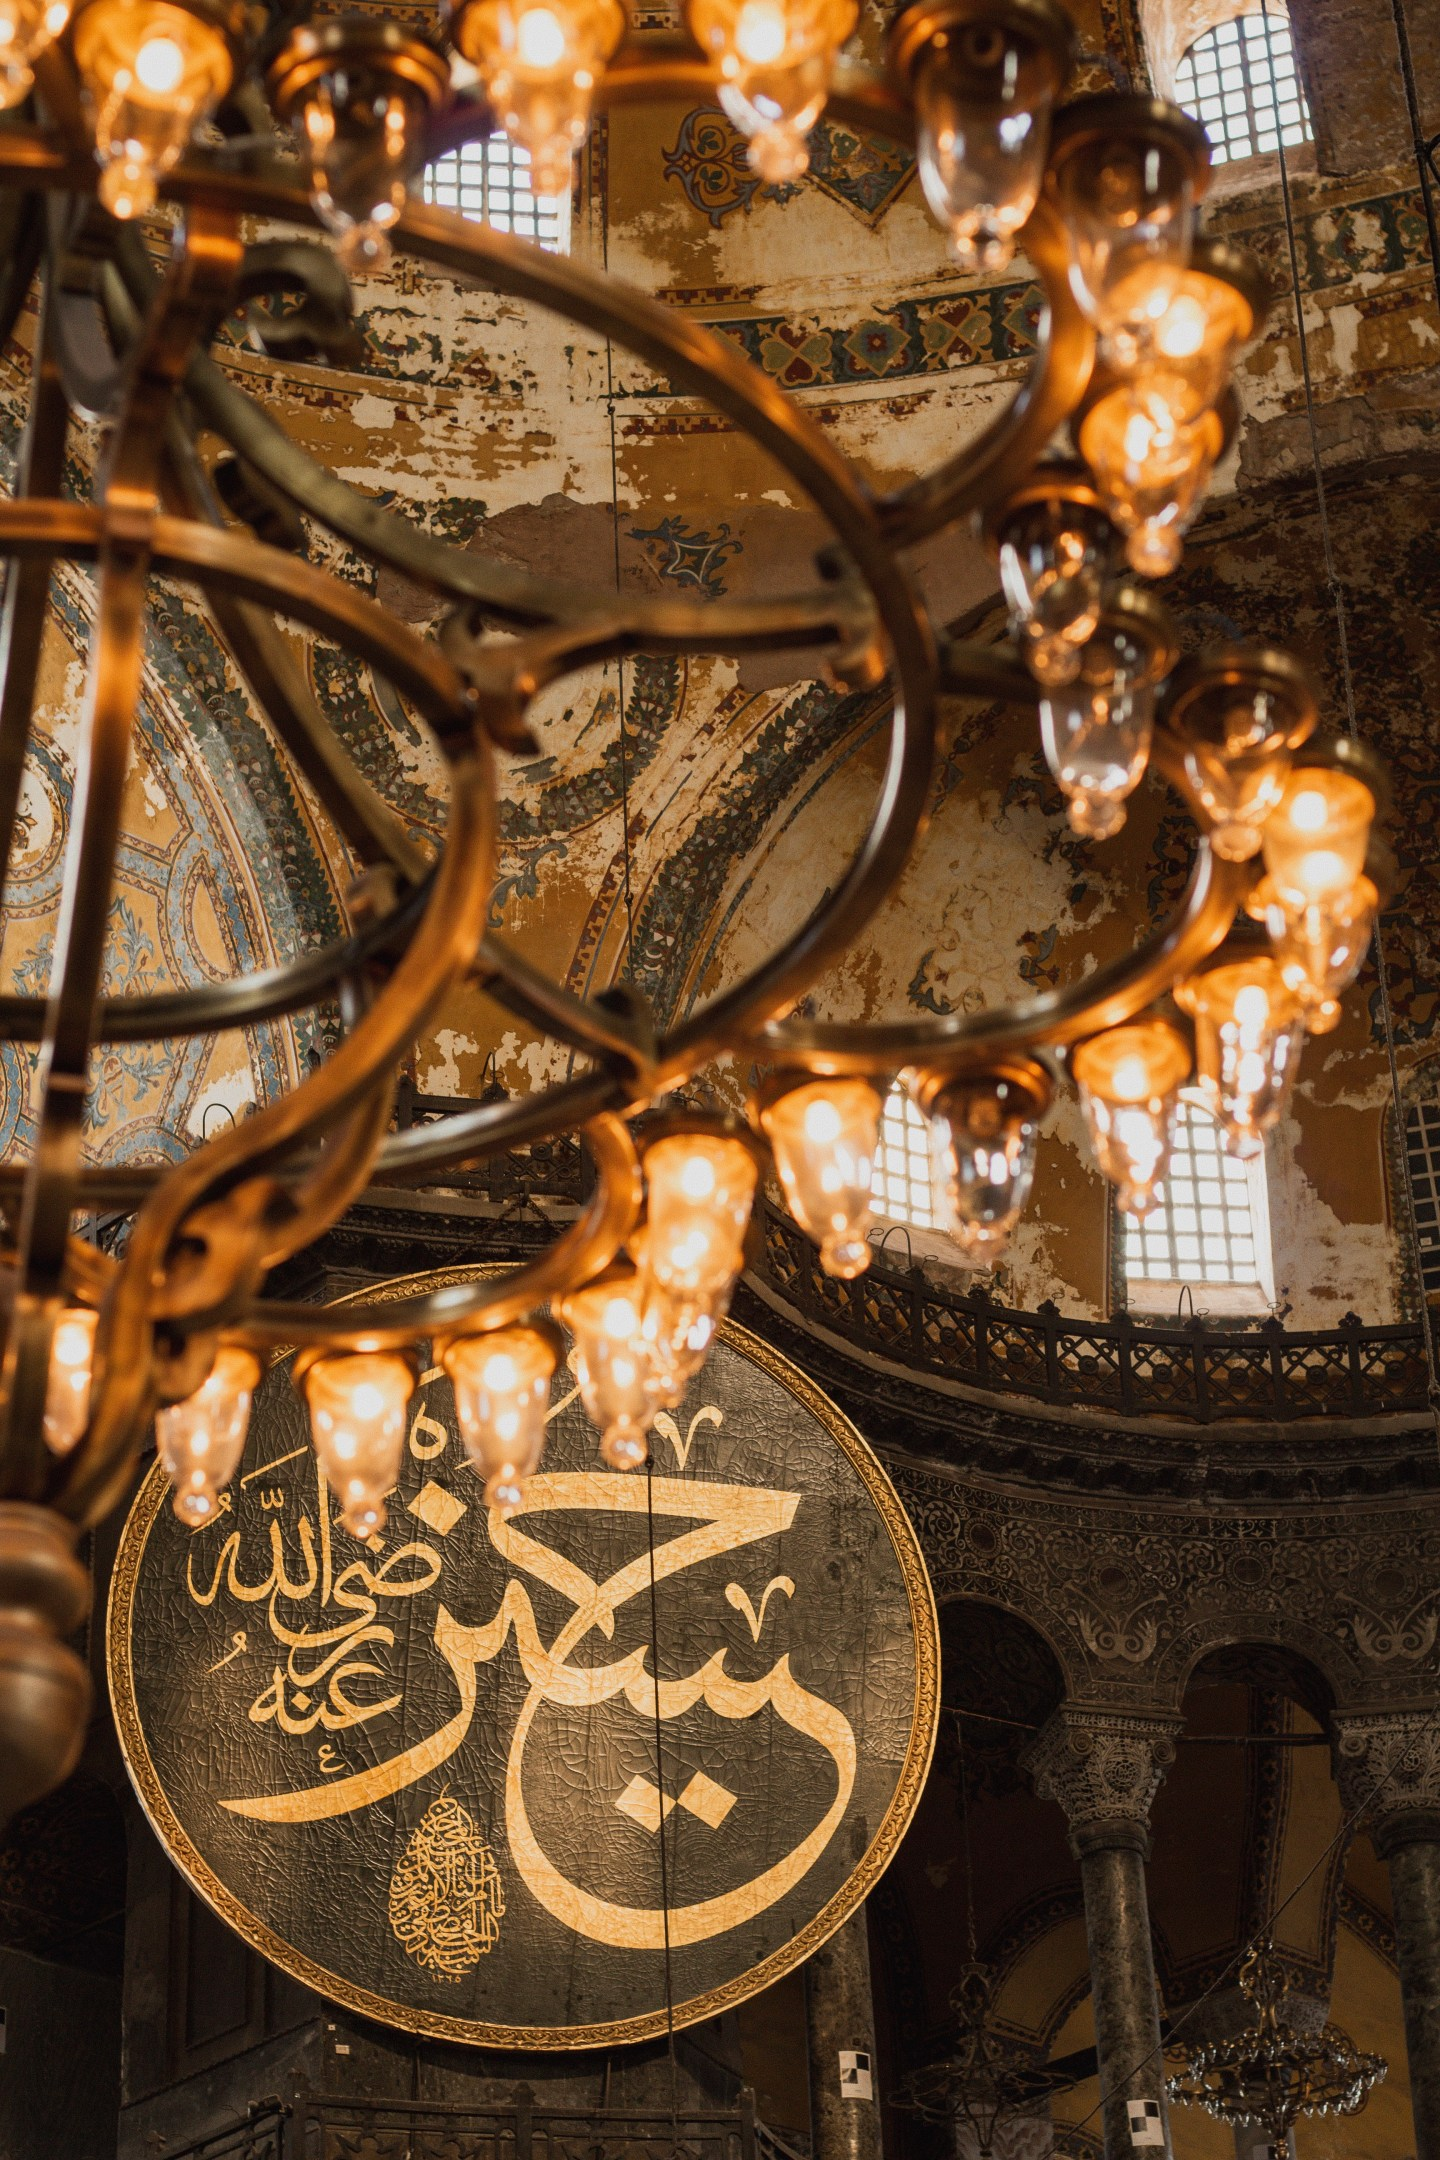 Illustrated by Sade - Ornate chandelier inside of Hagia Sophia Mosque in Istanbul, Turkey